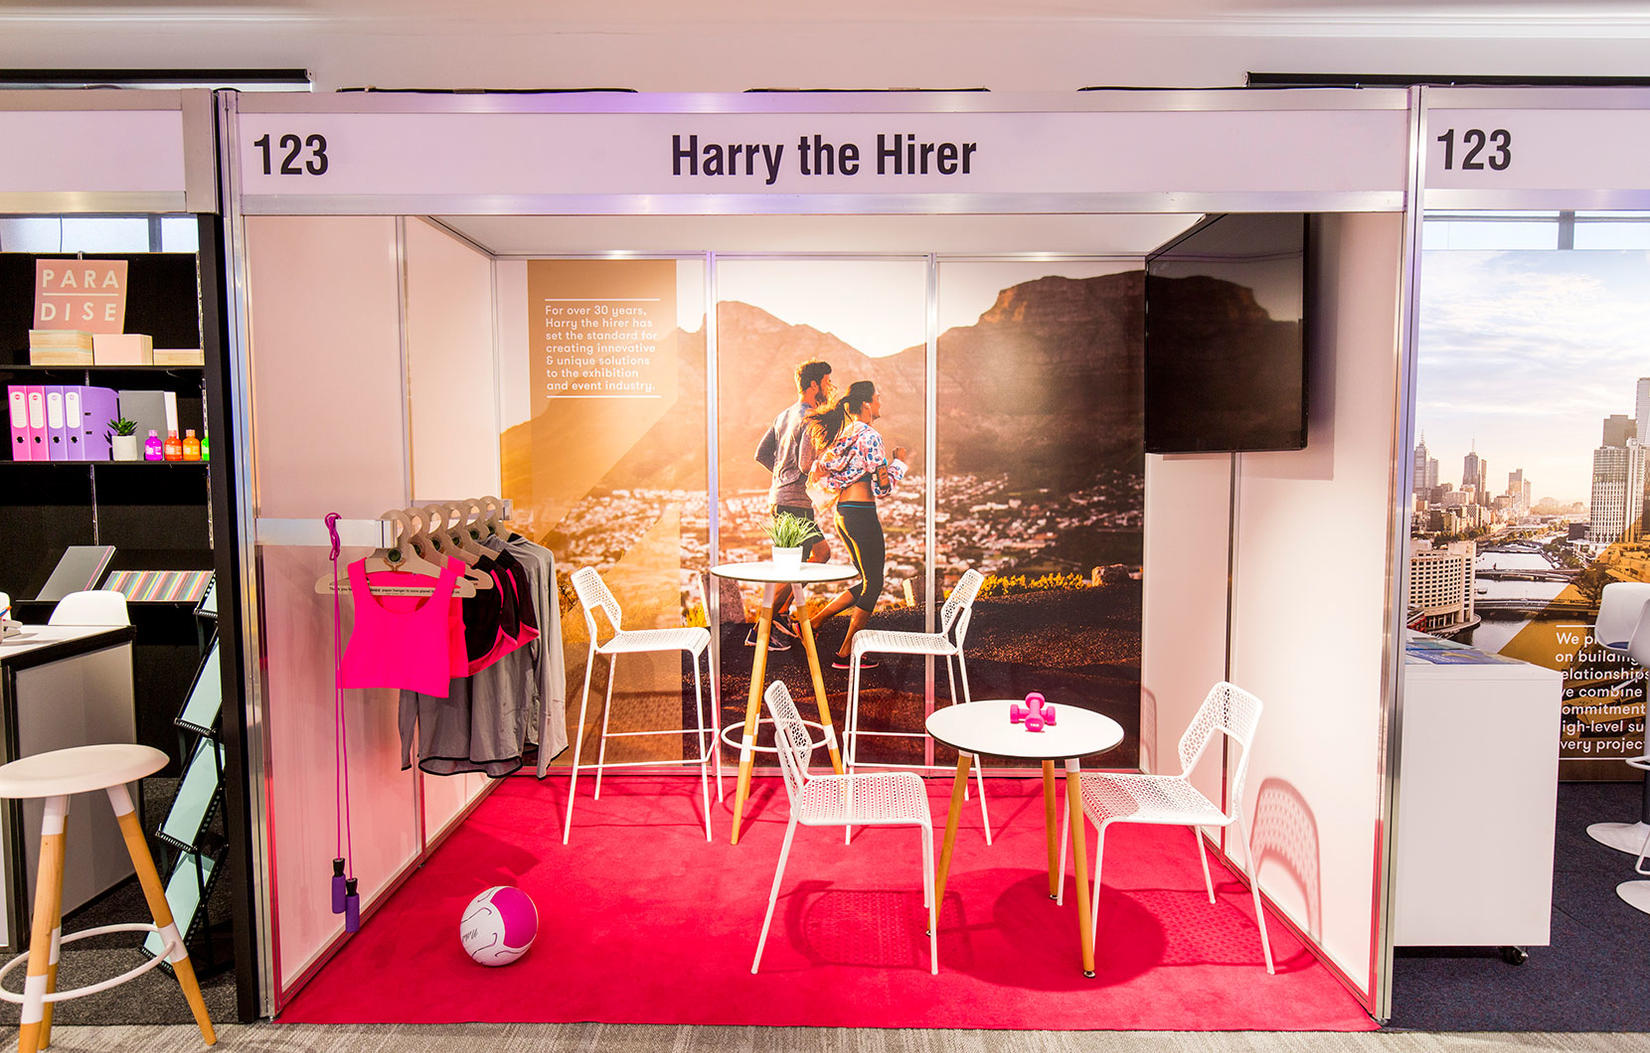 Furniture Hire Amp Rentals For Exhibitors Harry The Hirer